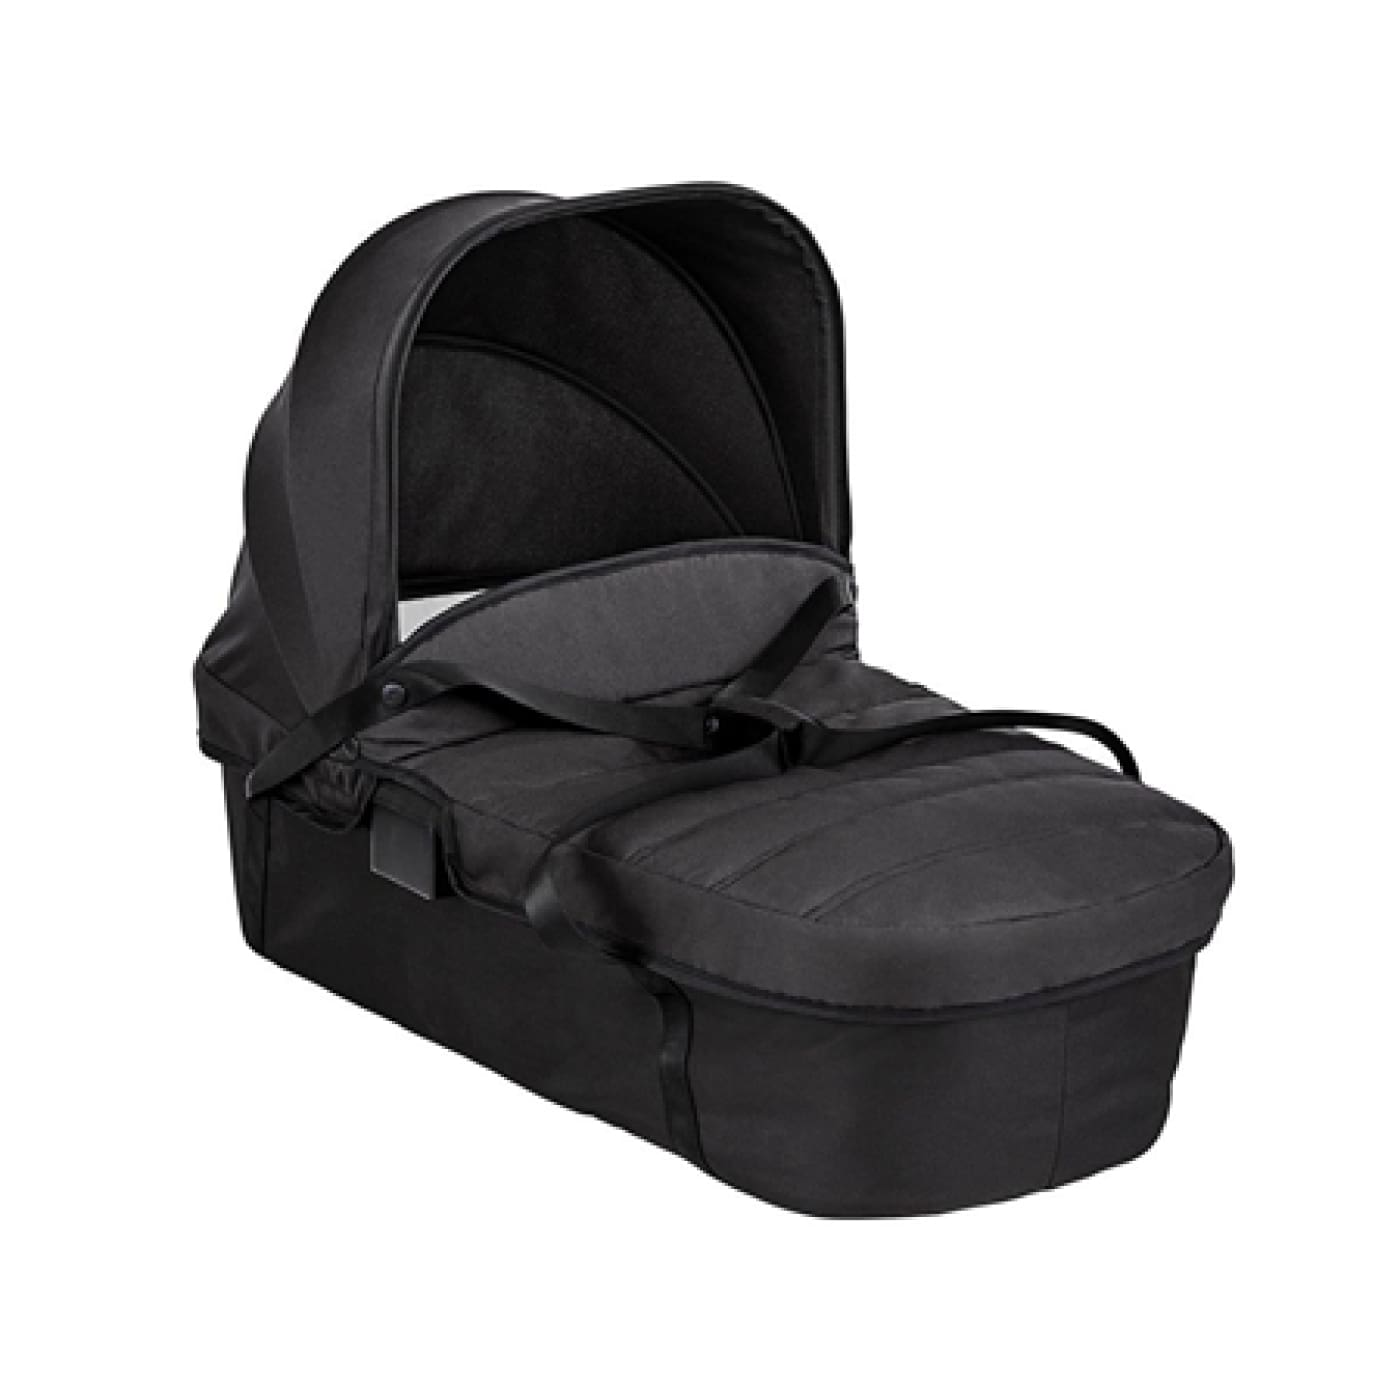 Baby Jogger City Tour 2 Bassinet - Jet - PRAMS & STROLLERS - BASS/CARRY COTS/STANDS